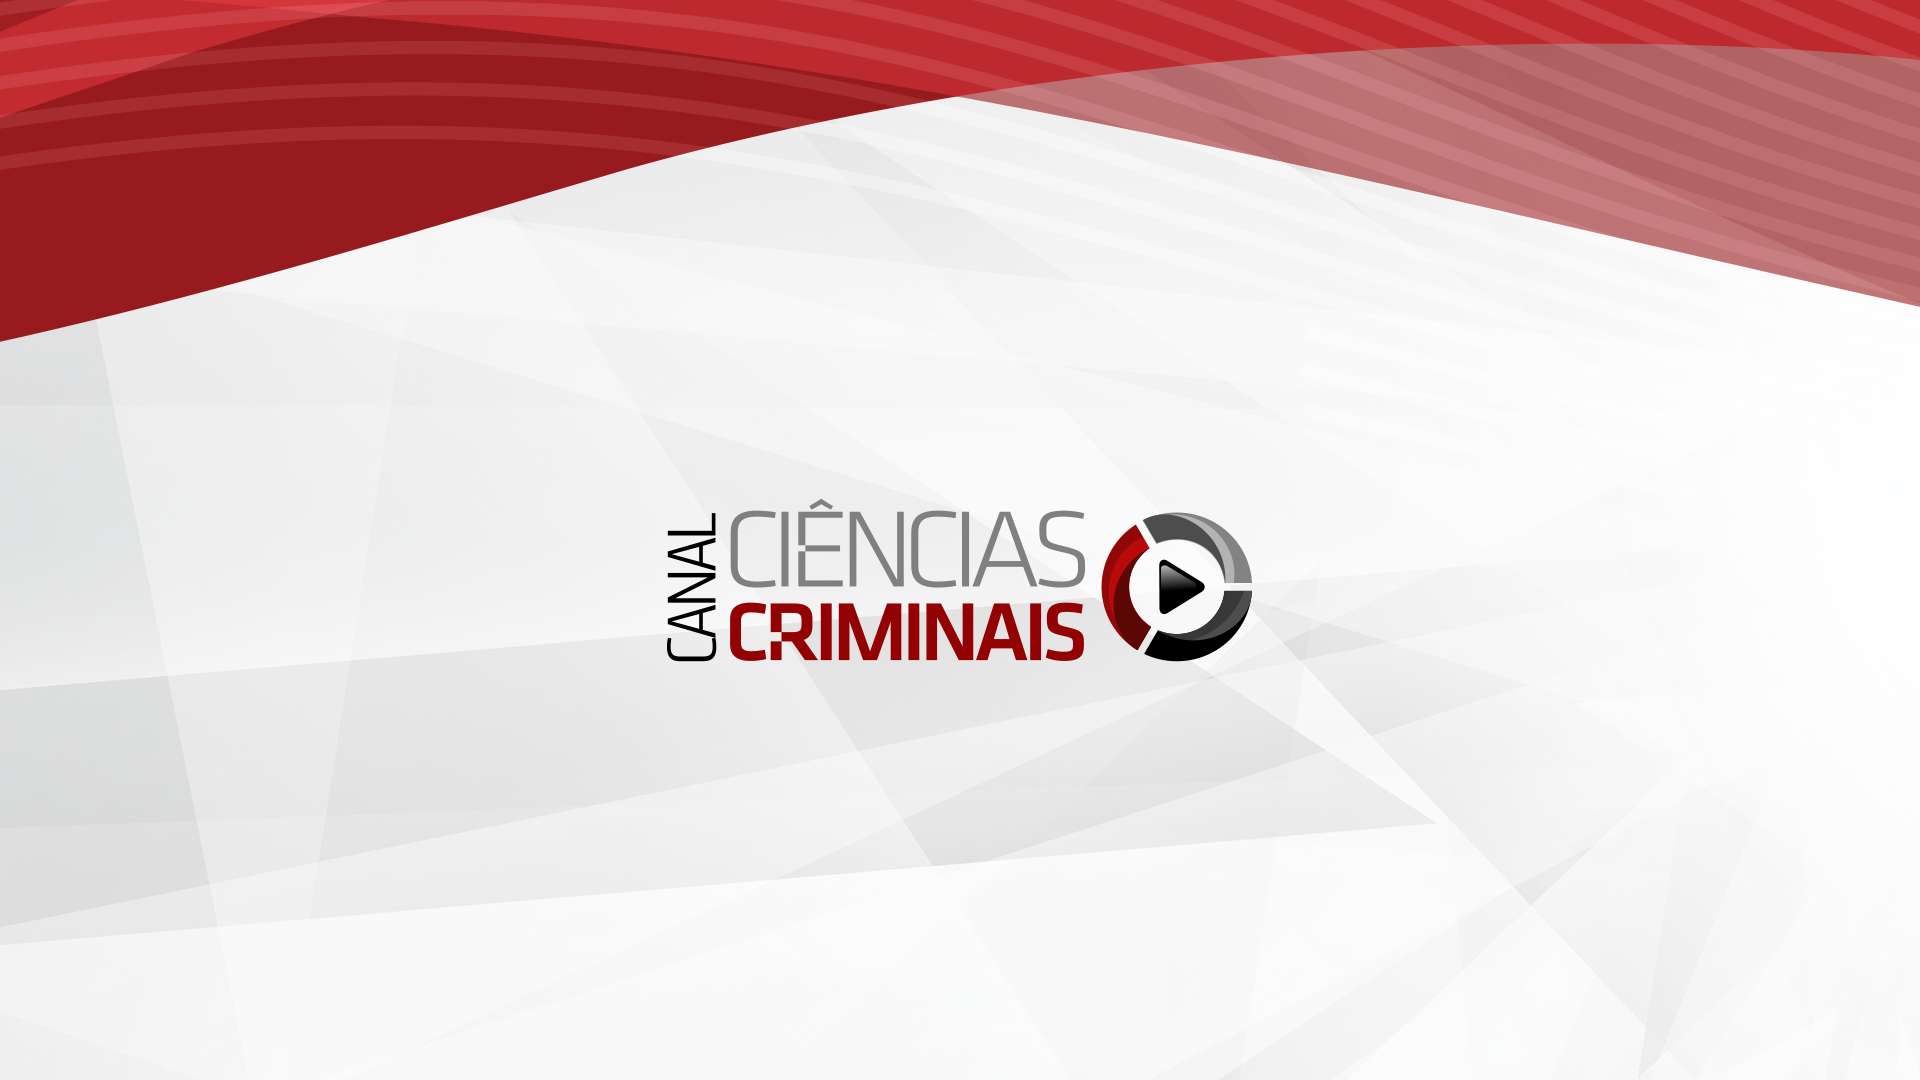 Canal Ciências Criminais adquire registro do ISSN